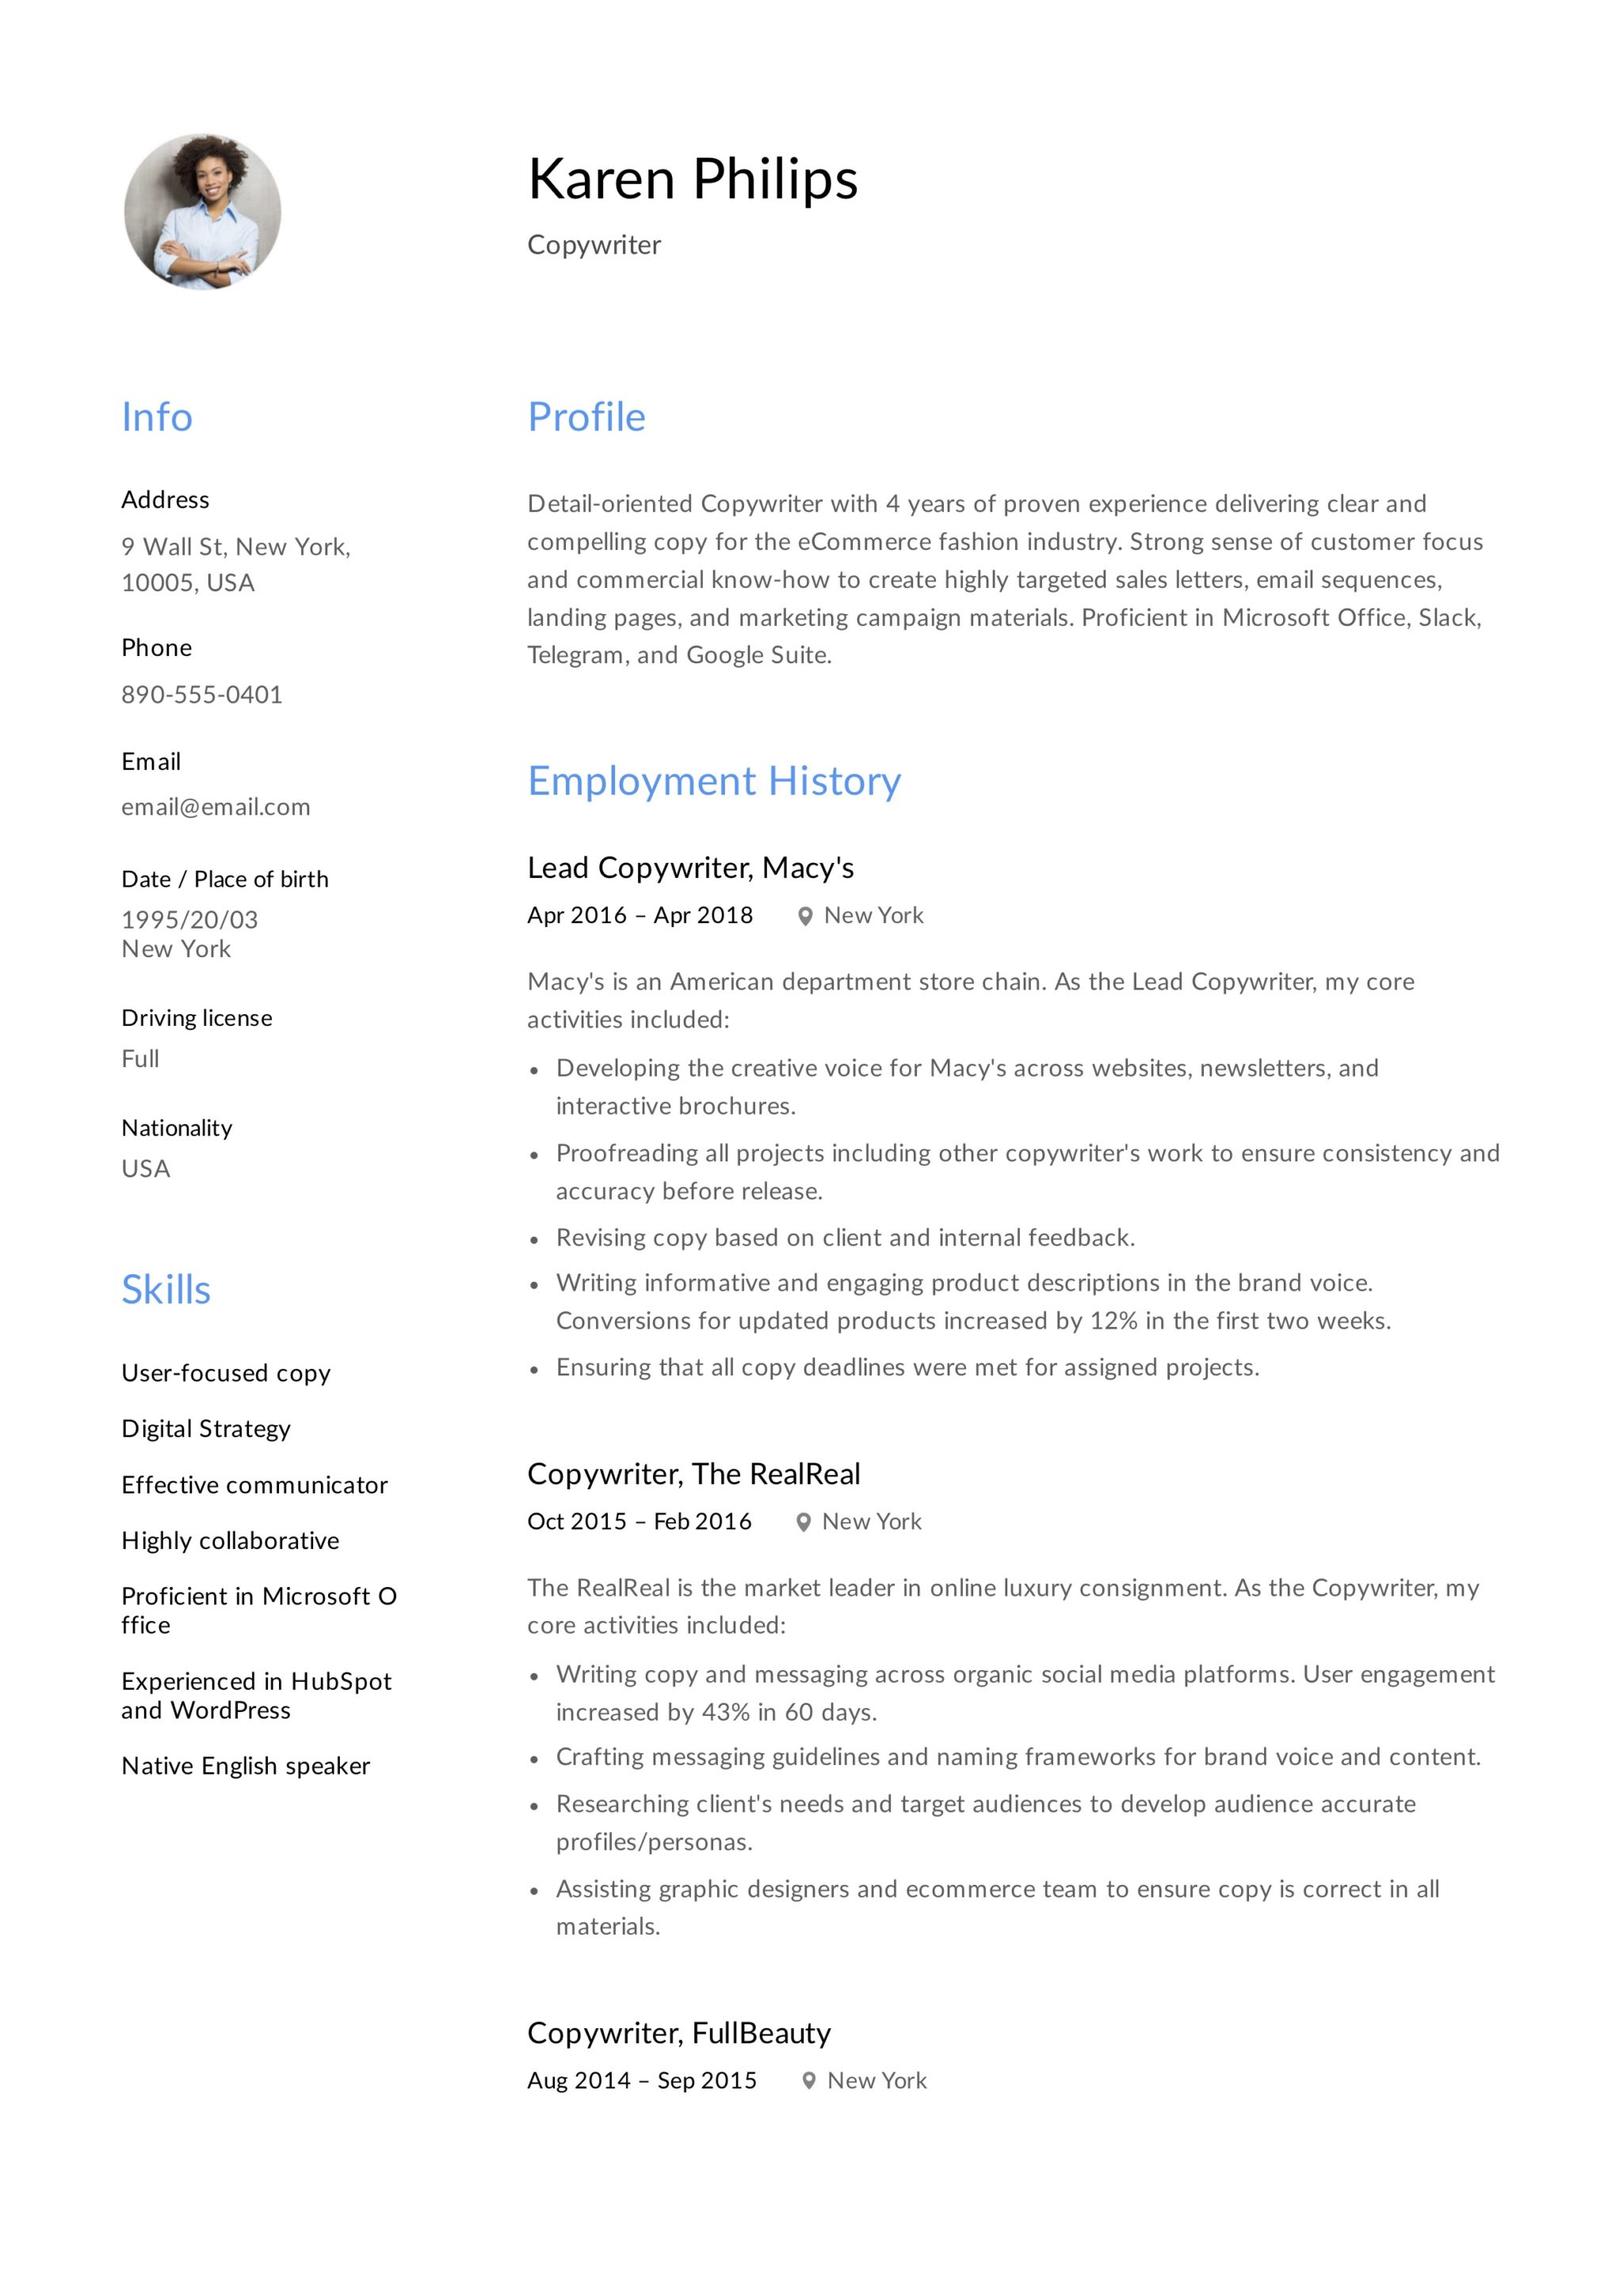 Copywriter Resume Template (8)